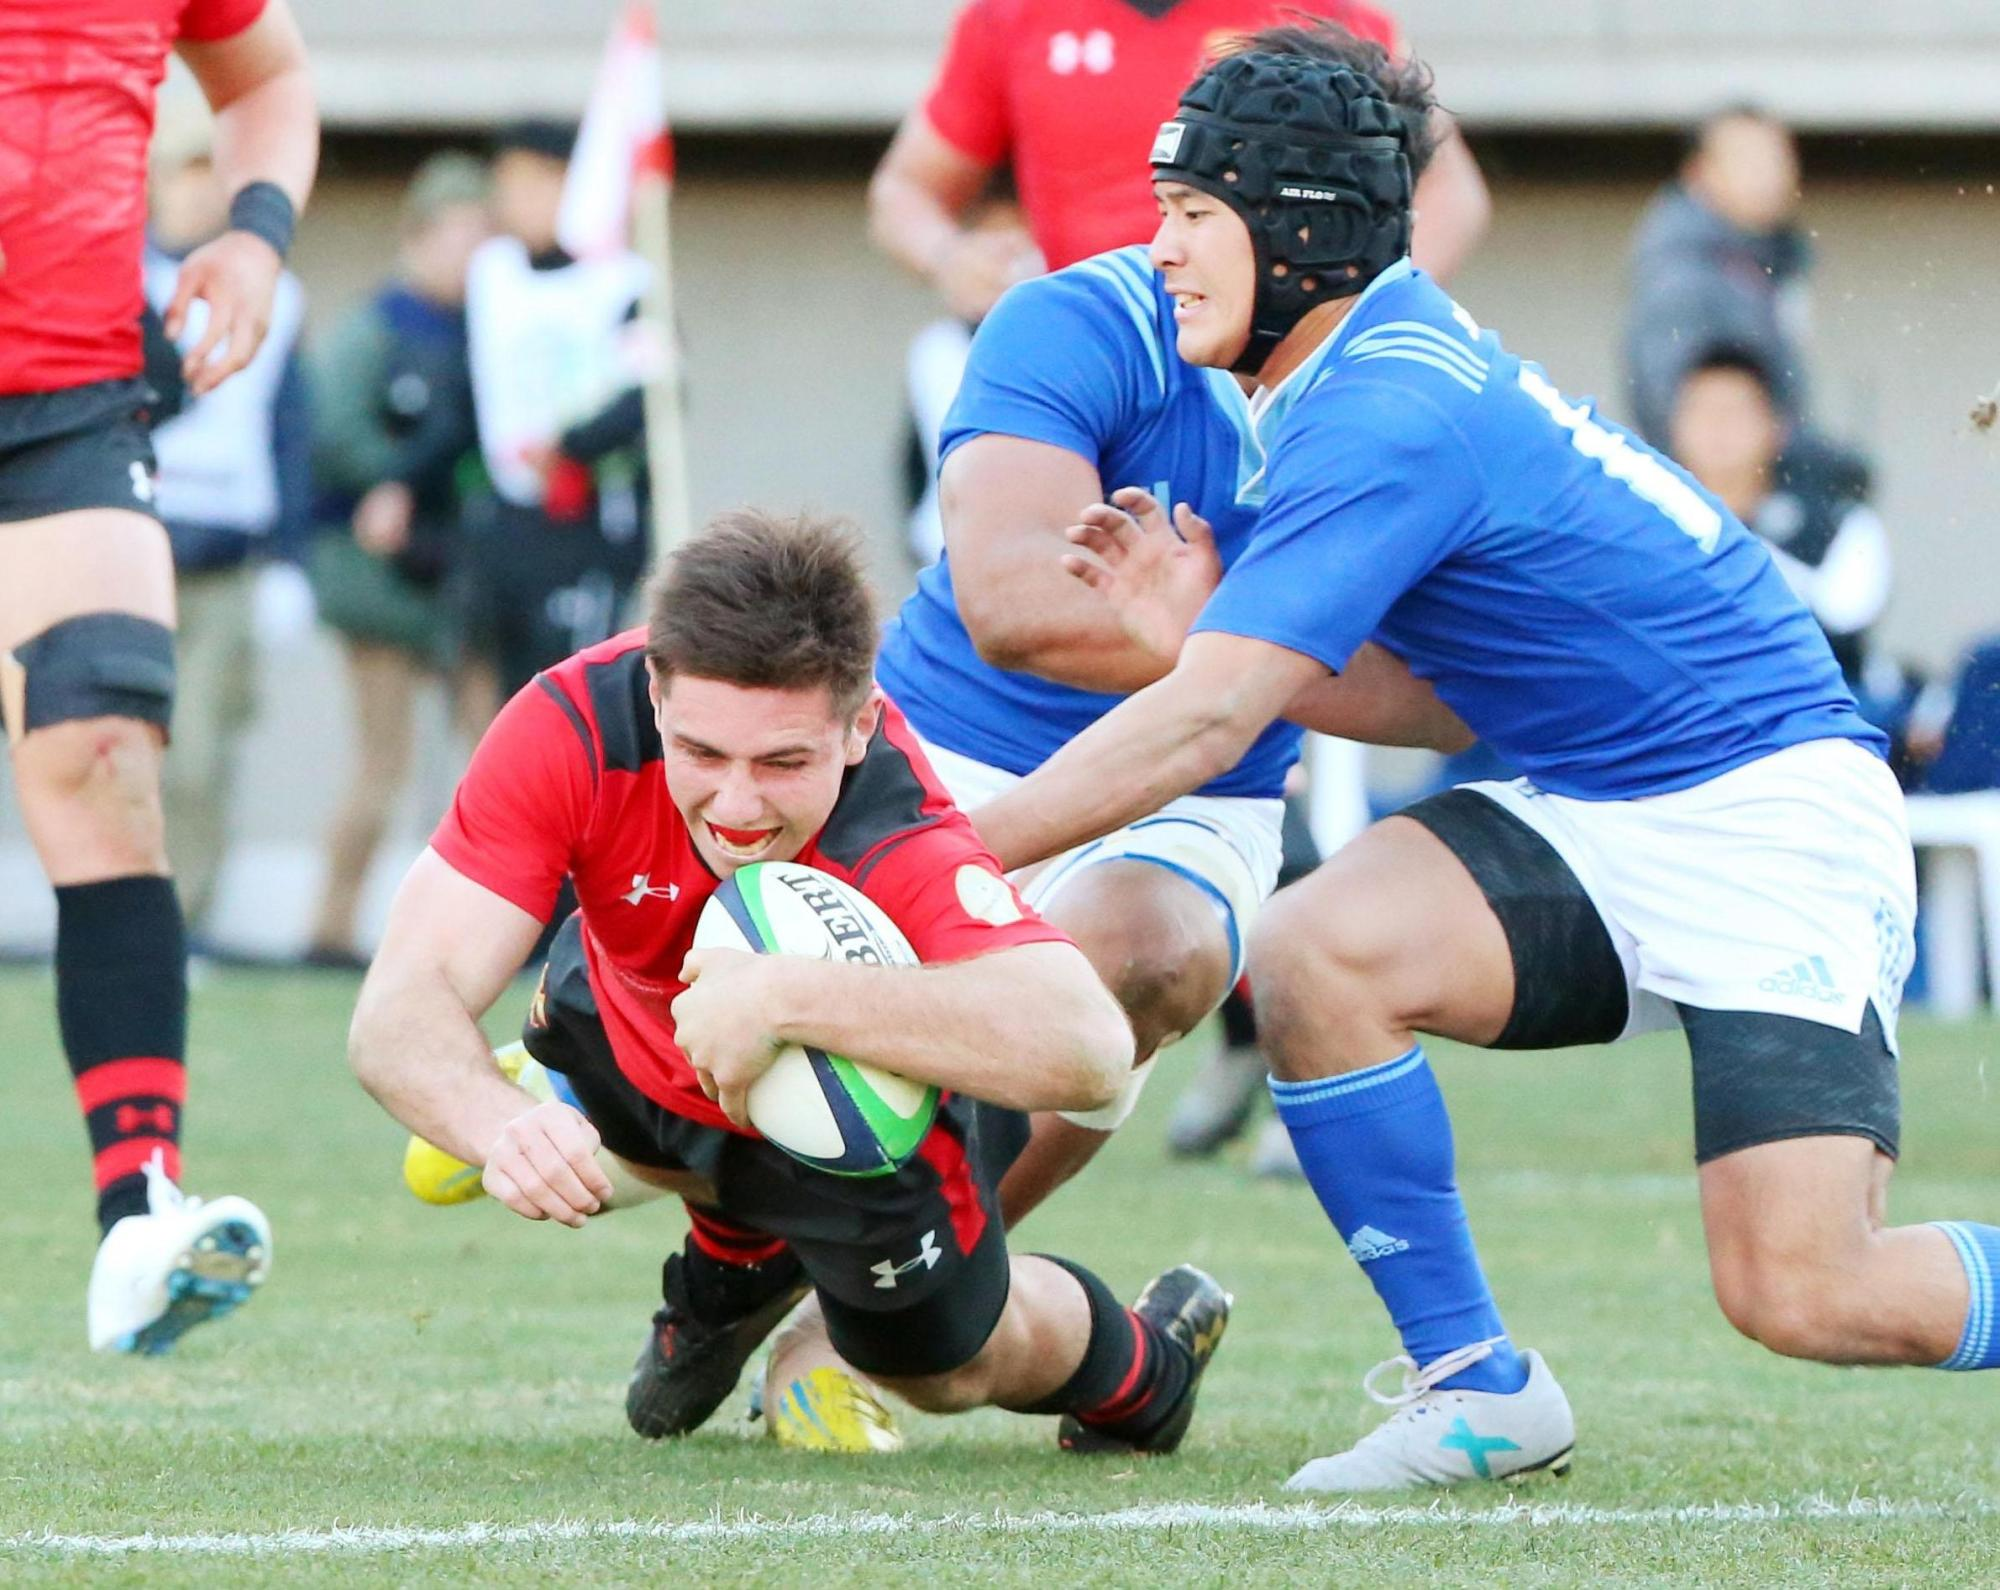 Teikyo's Nicholas McCurran scores a try against Tokai University on Tuesday in the national college rugby championship semifinals at Prince Chichibu Memorial Rugby Ground. Teikyo won 31-12.   KYODO